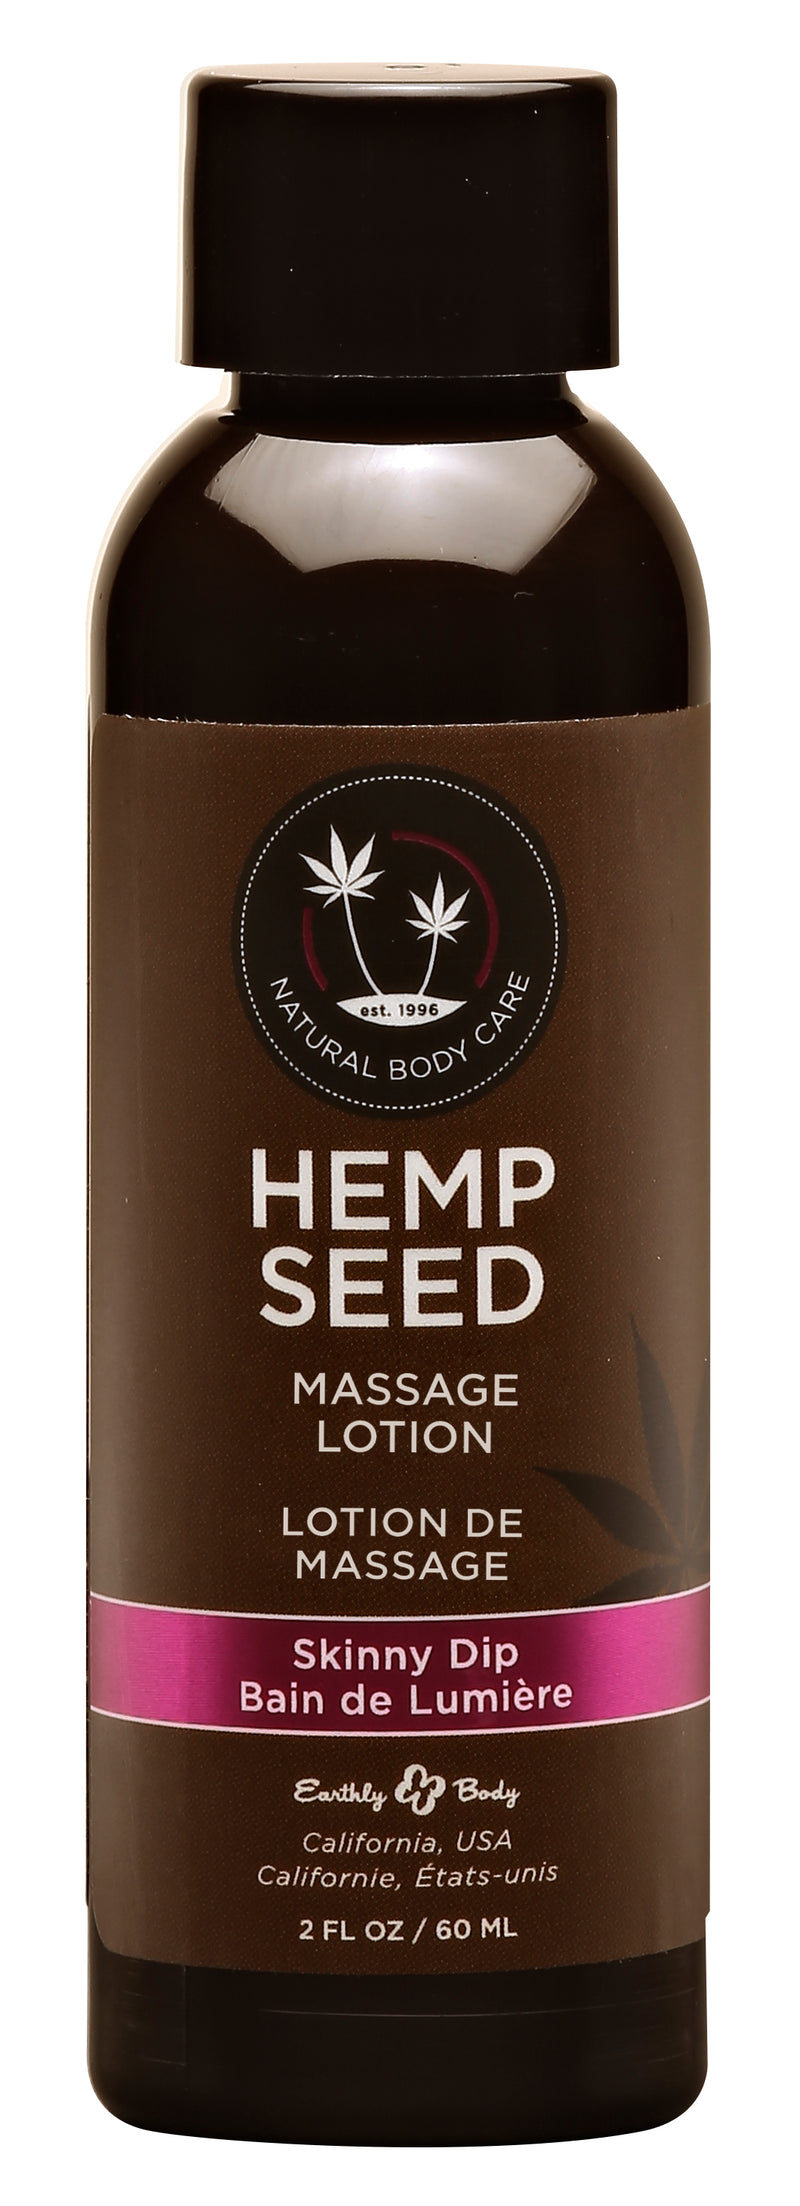 Hemp Seed Massage Lotion - Skinny Dip - 2 Fl. Oz.  / 60 ml EB-ML121